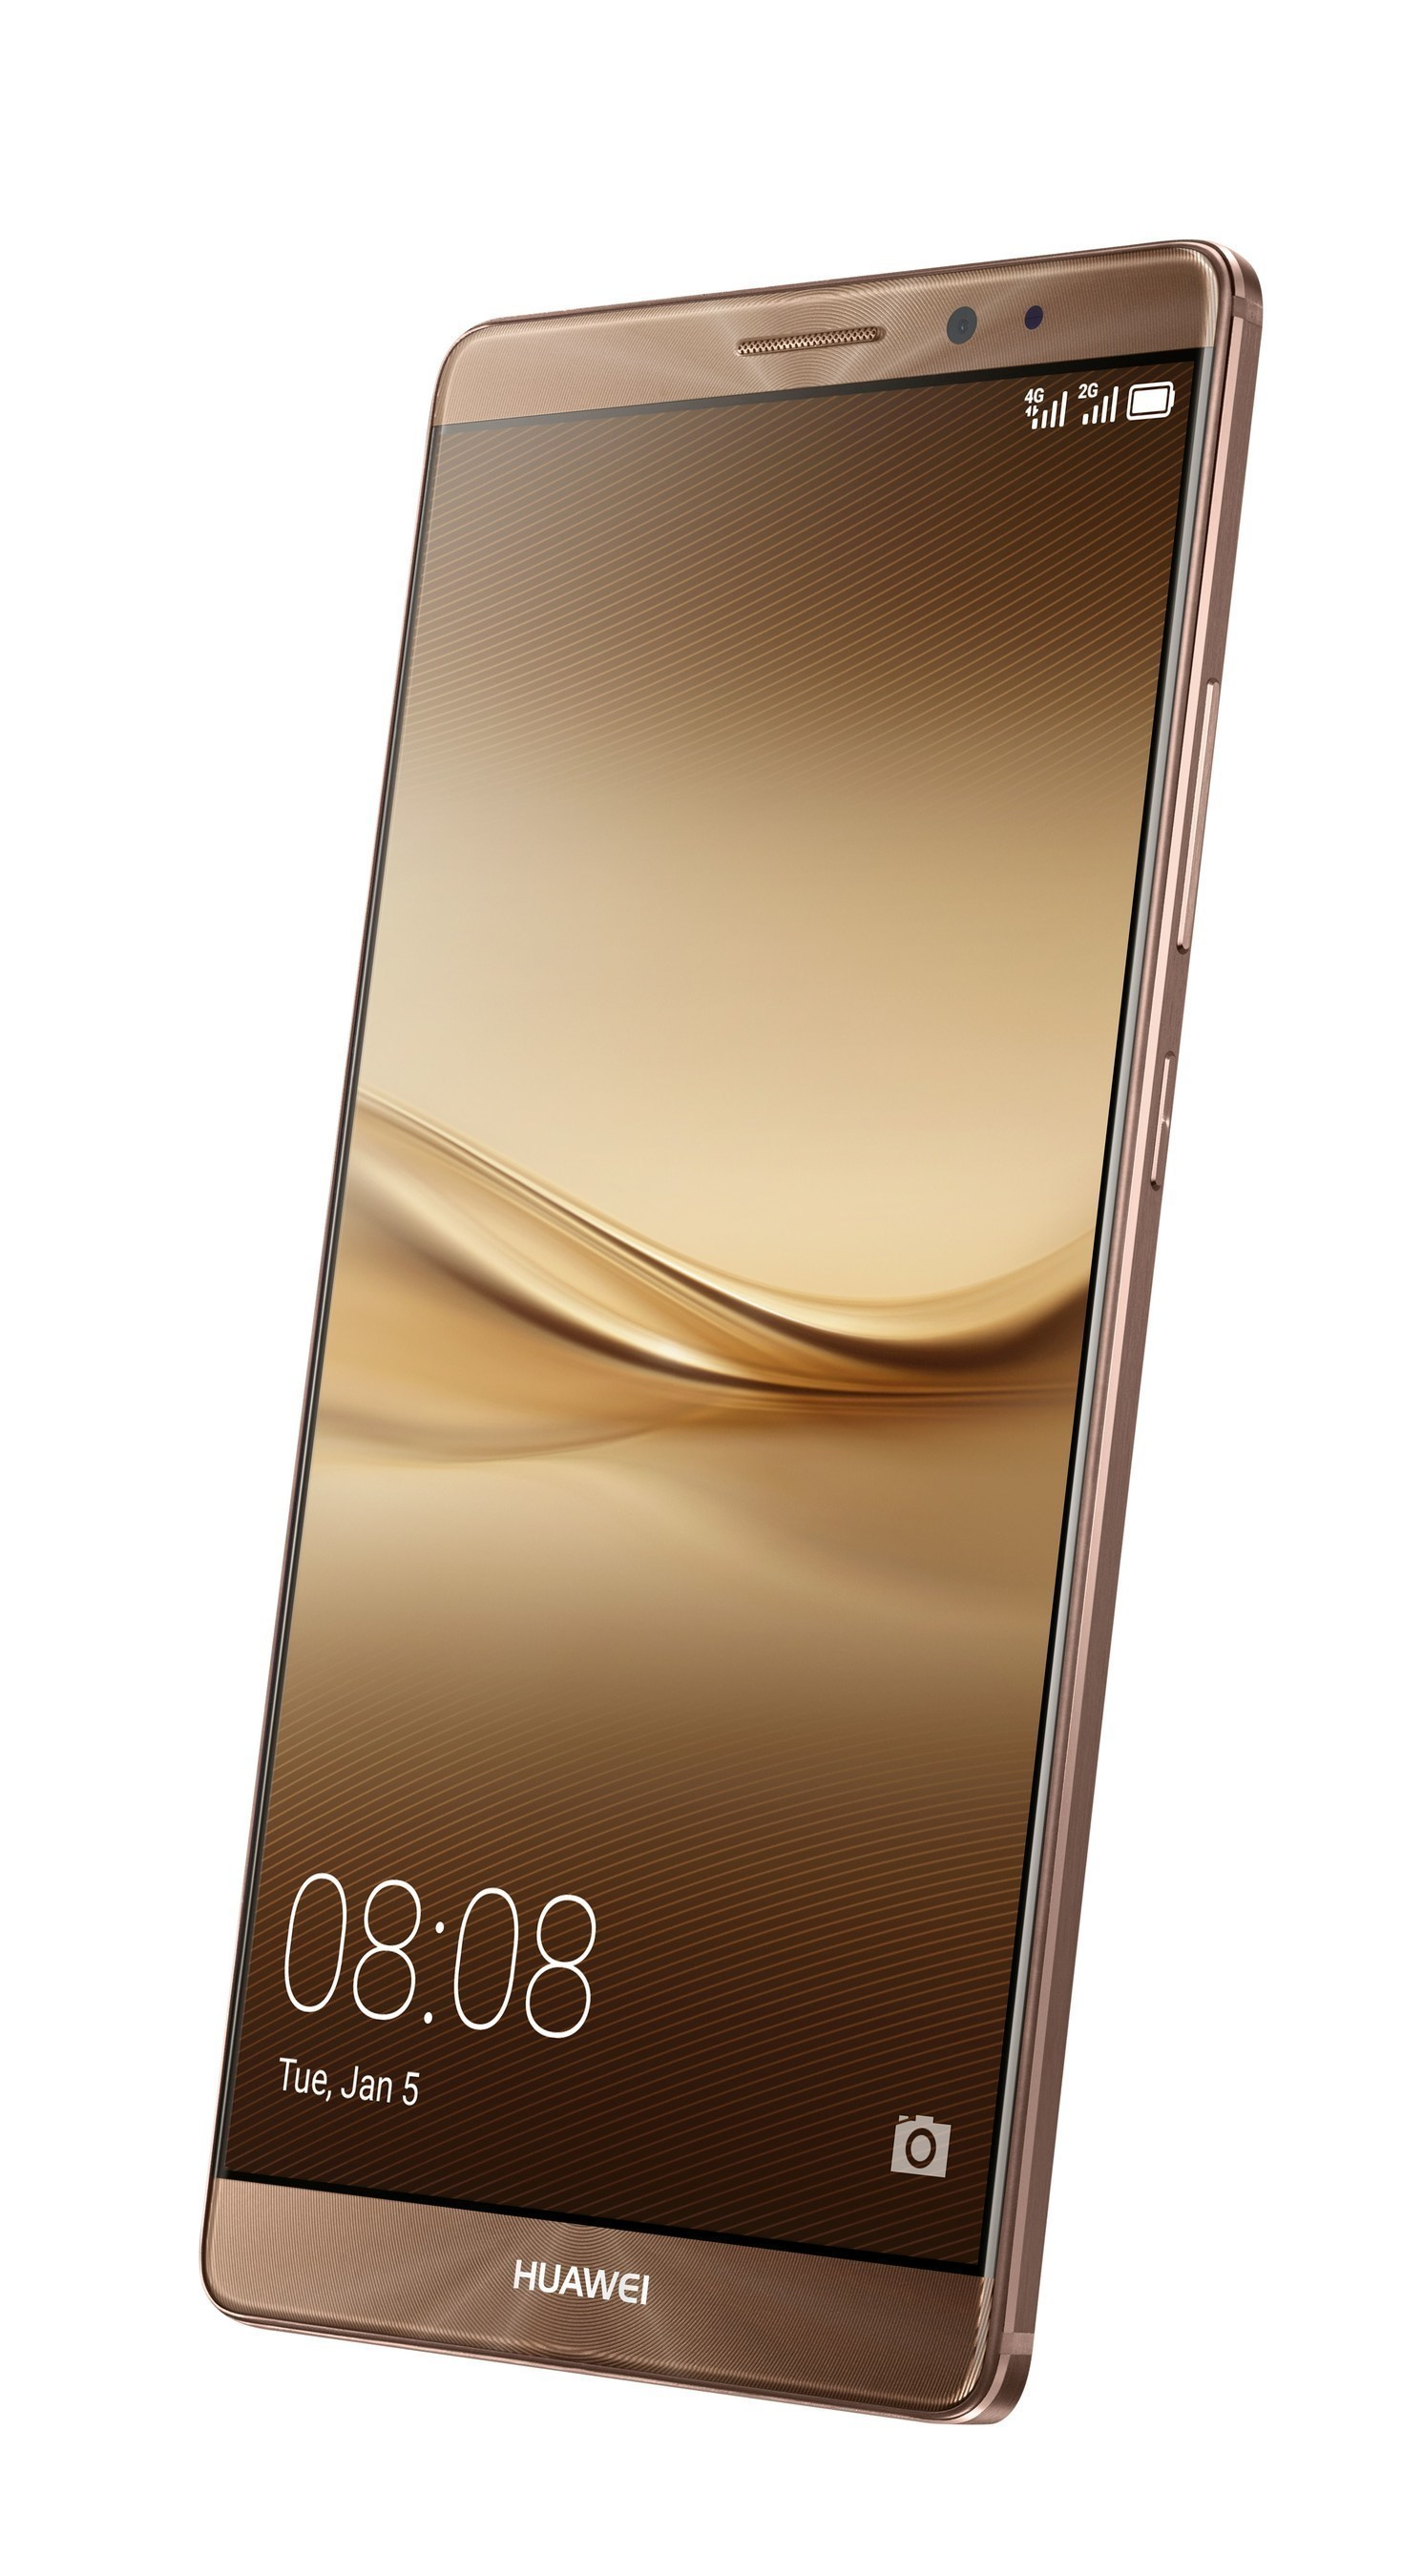 The new Huawei Mate 8 smartphone, launched at CES 2016, displayed with the coffee case colour case (PRNewsFoto/Huawei Consumer BG) (PRNewsFoto/Huawei Consumer BG)